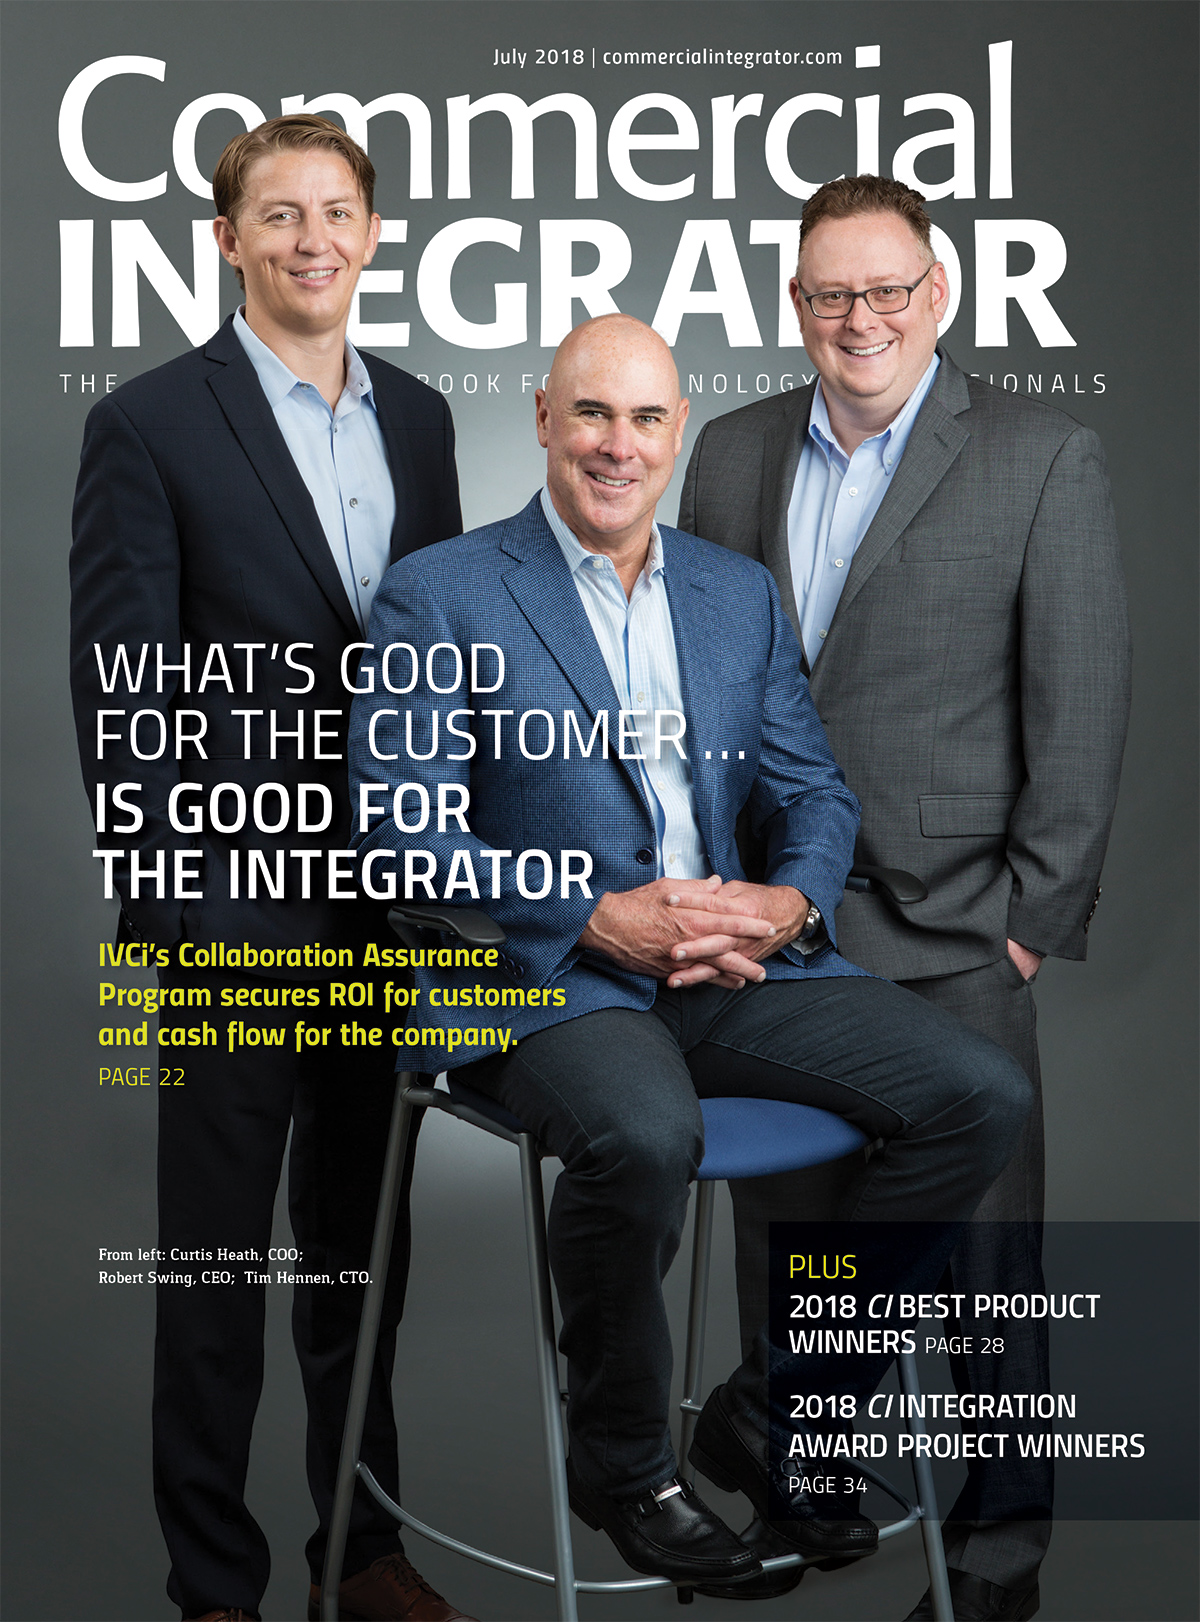 July 2018: Commercial Integrator